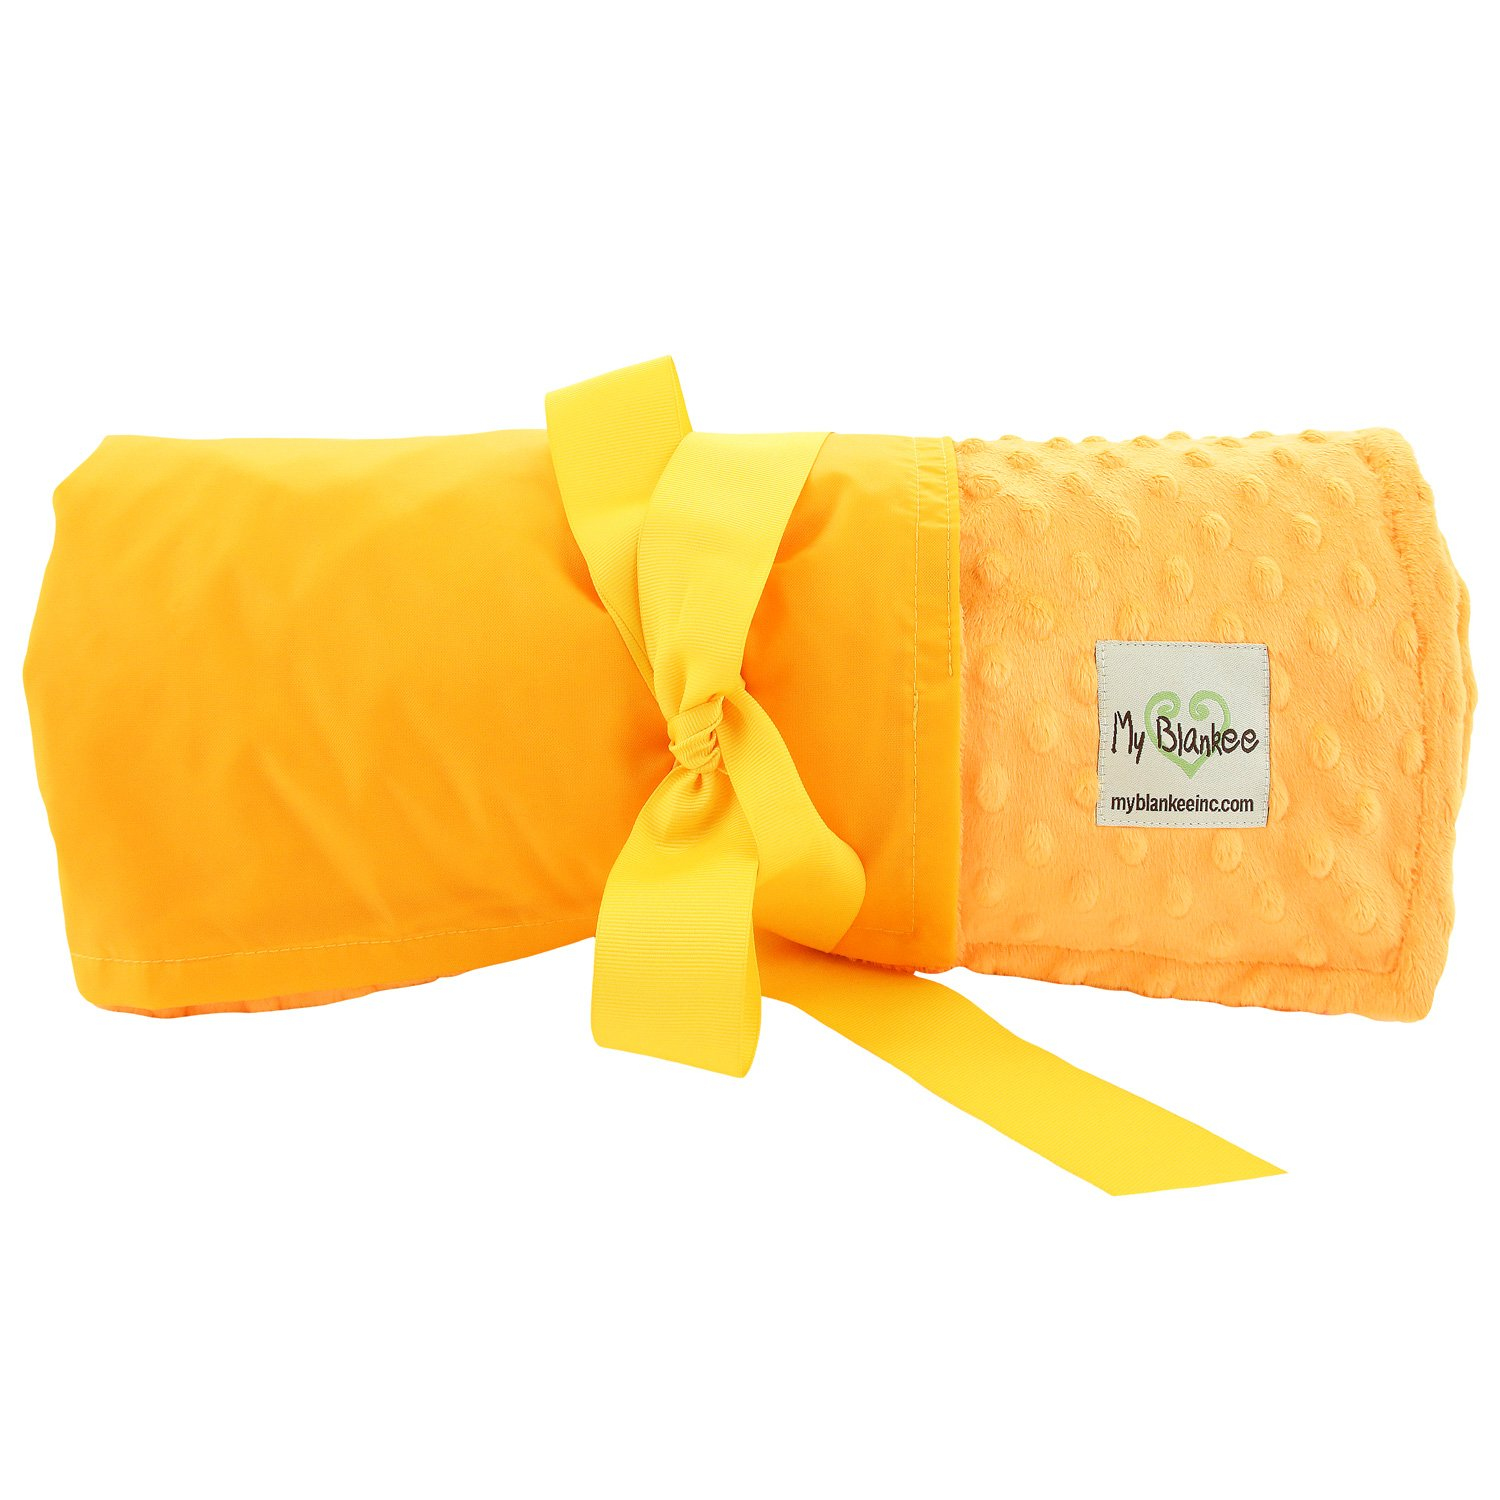 My Blankee Extra Large Picnic & Outdoor Blanket Warm and Soft Minky Dot with Waterproof Backing, Yellow, 59'' X 85''